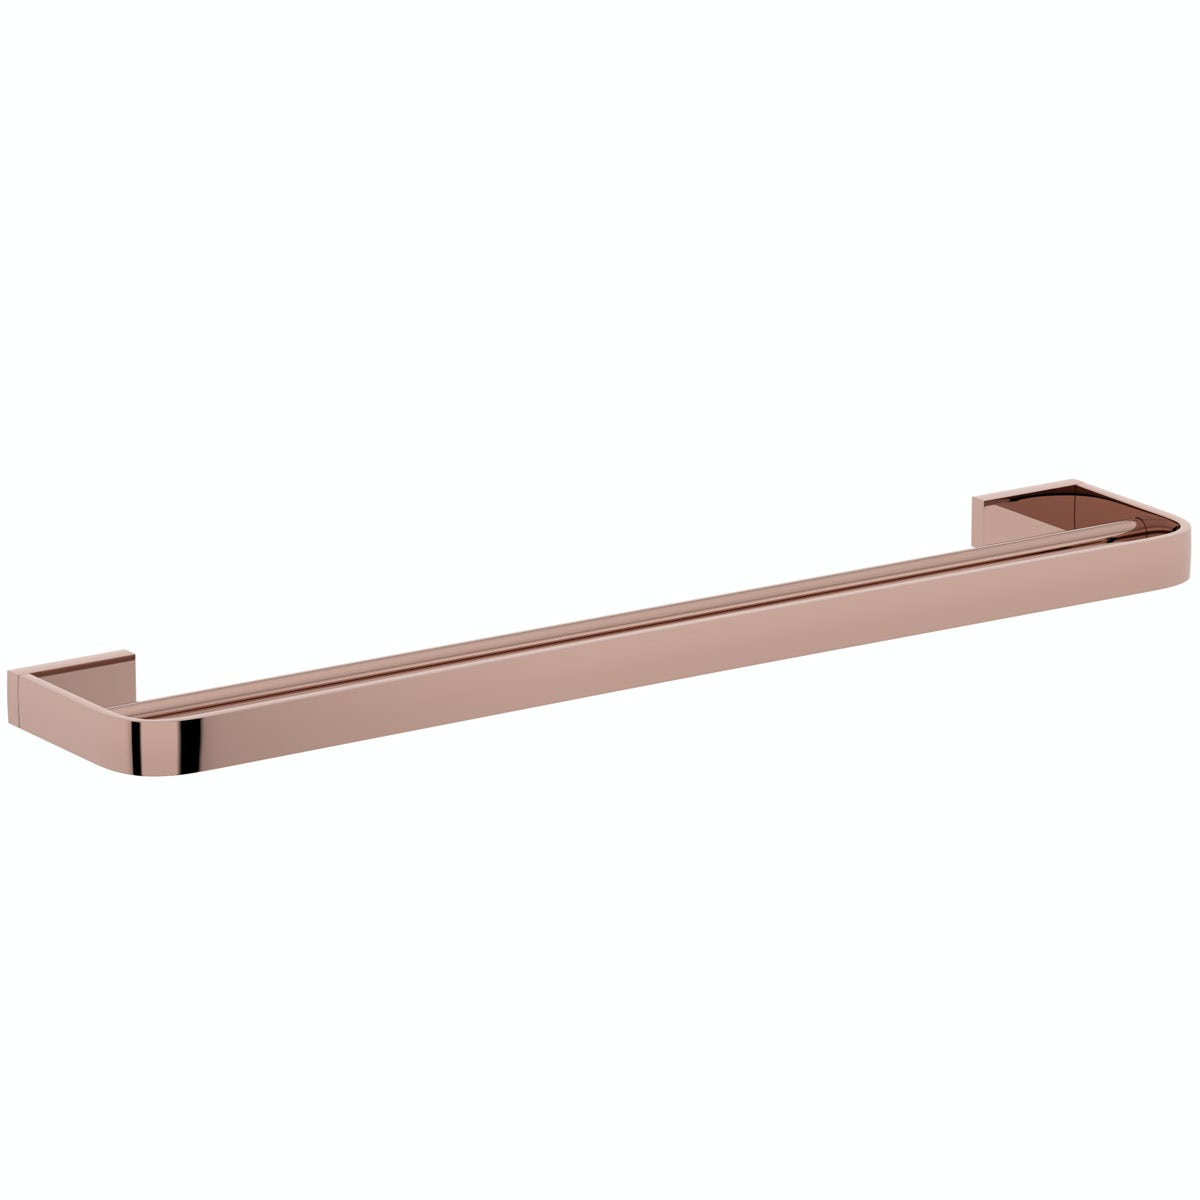 Mode Spencer rose gold double towel rail 600mm